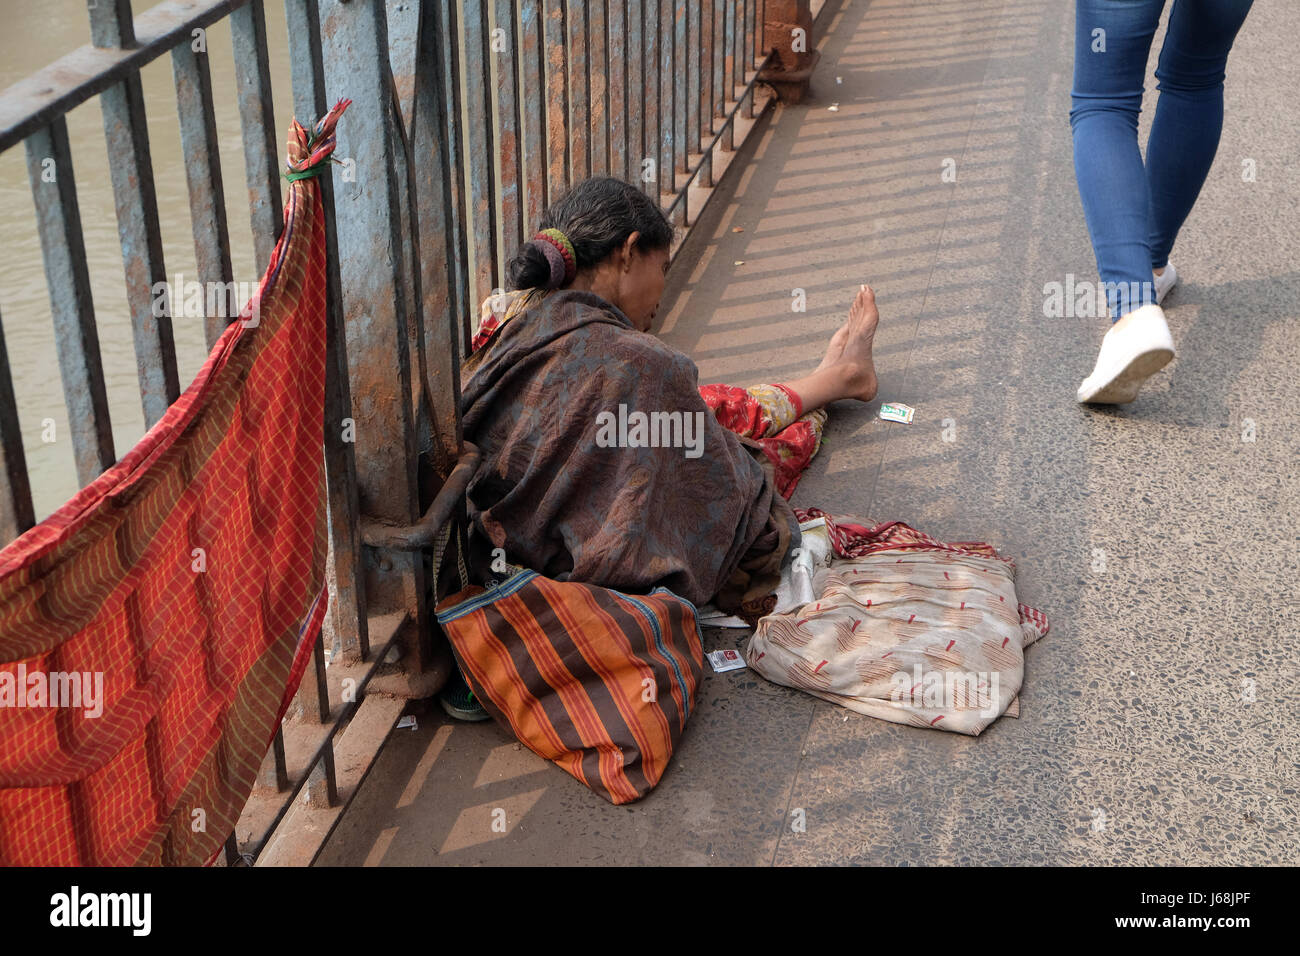 Beggars are the most disadvantaged castes living in the streets, Kolkata, India - Stock Image